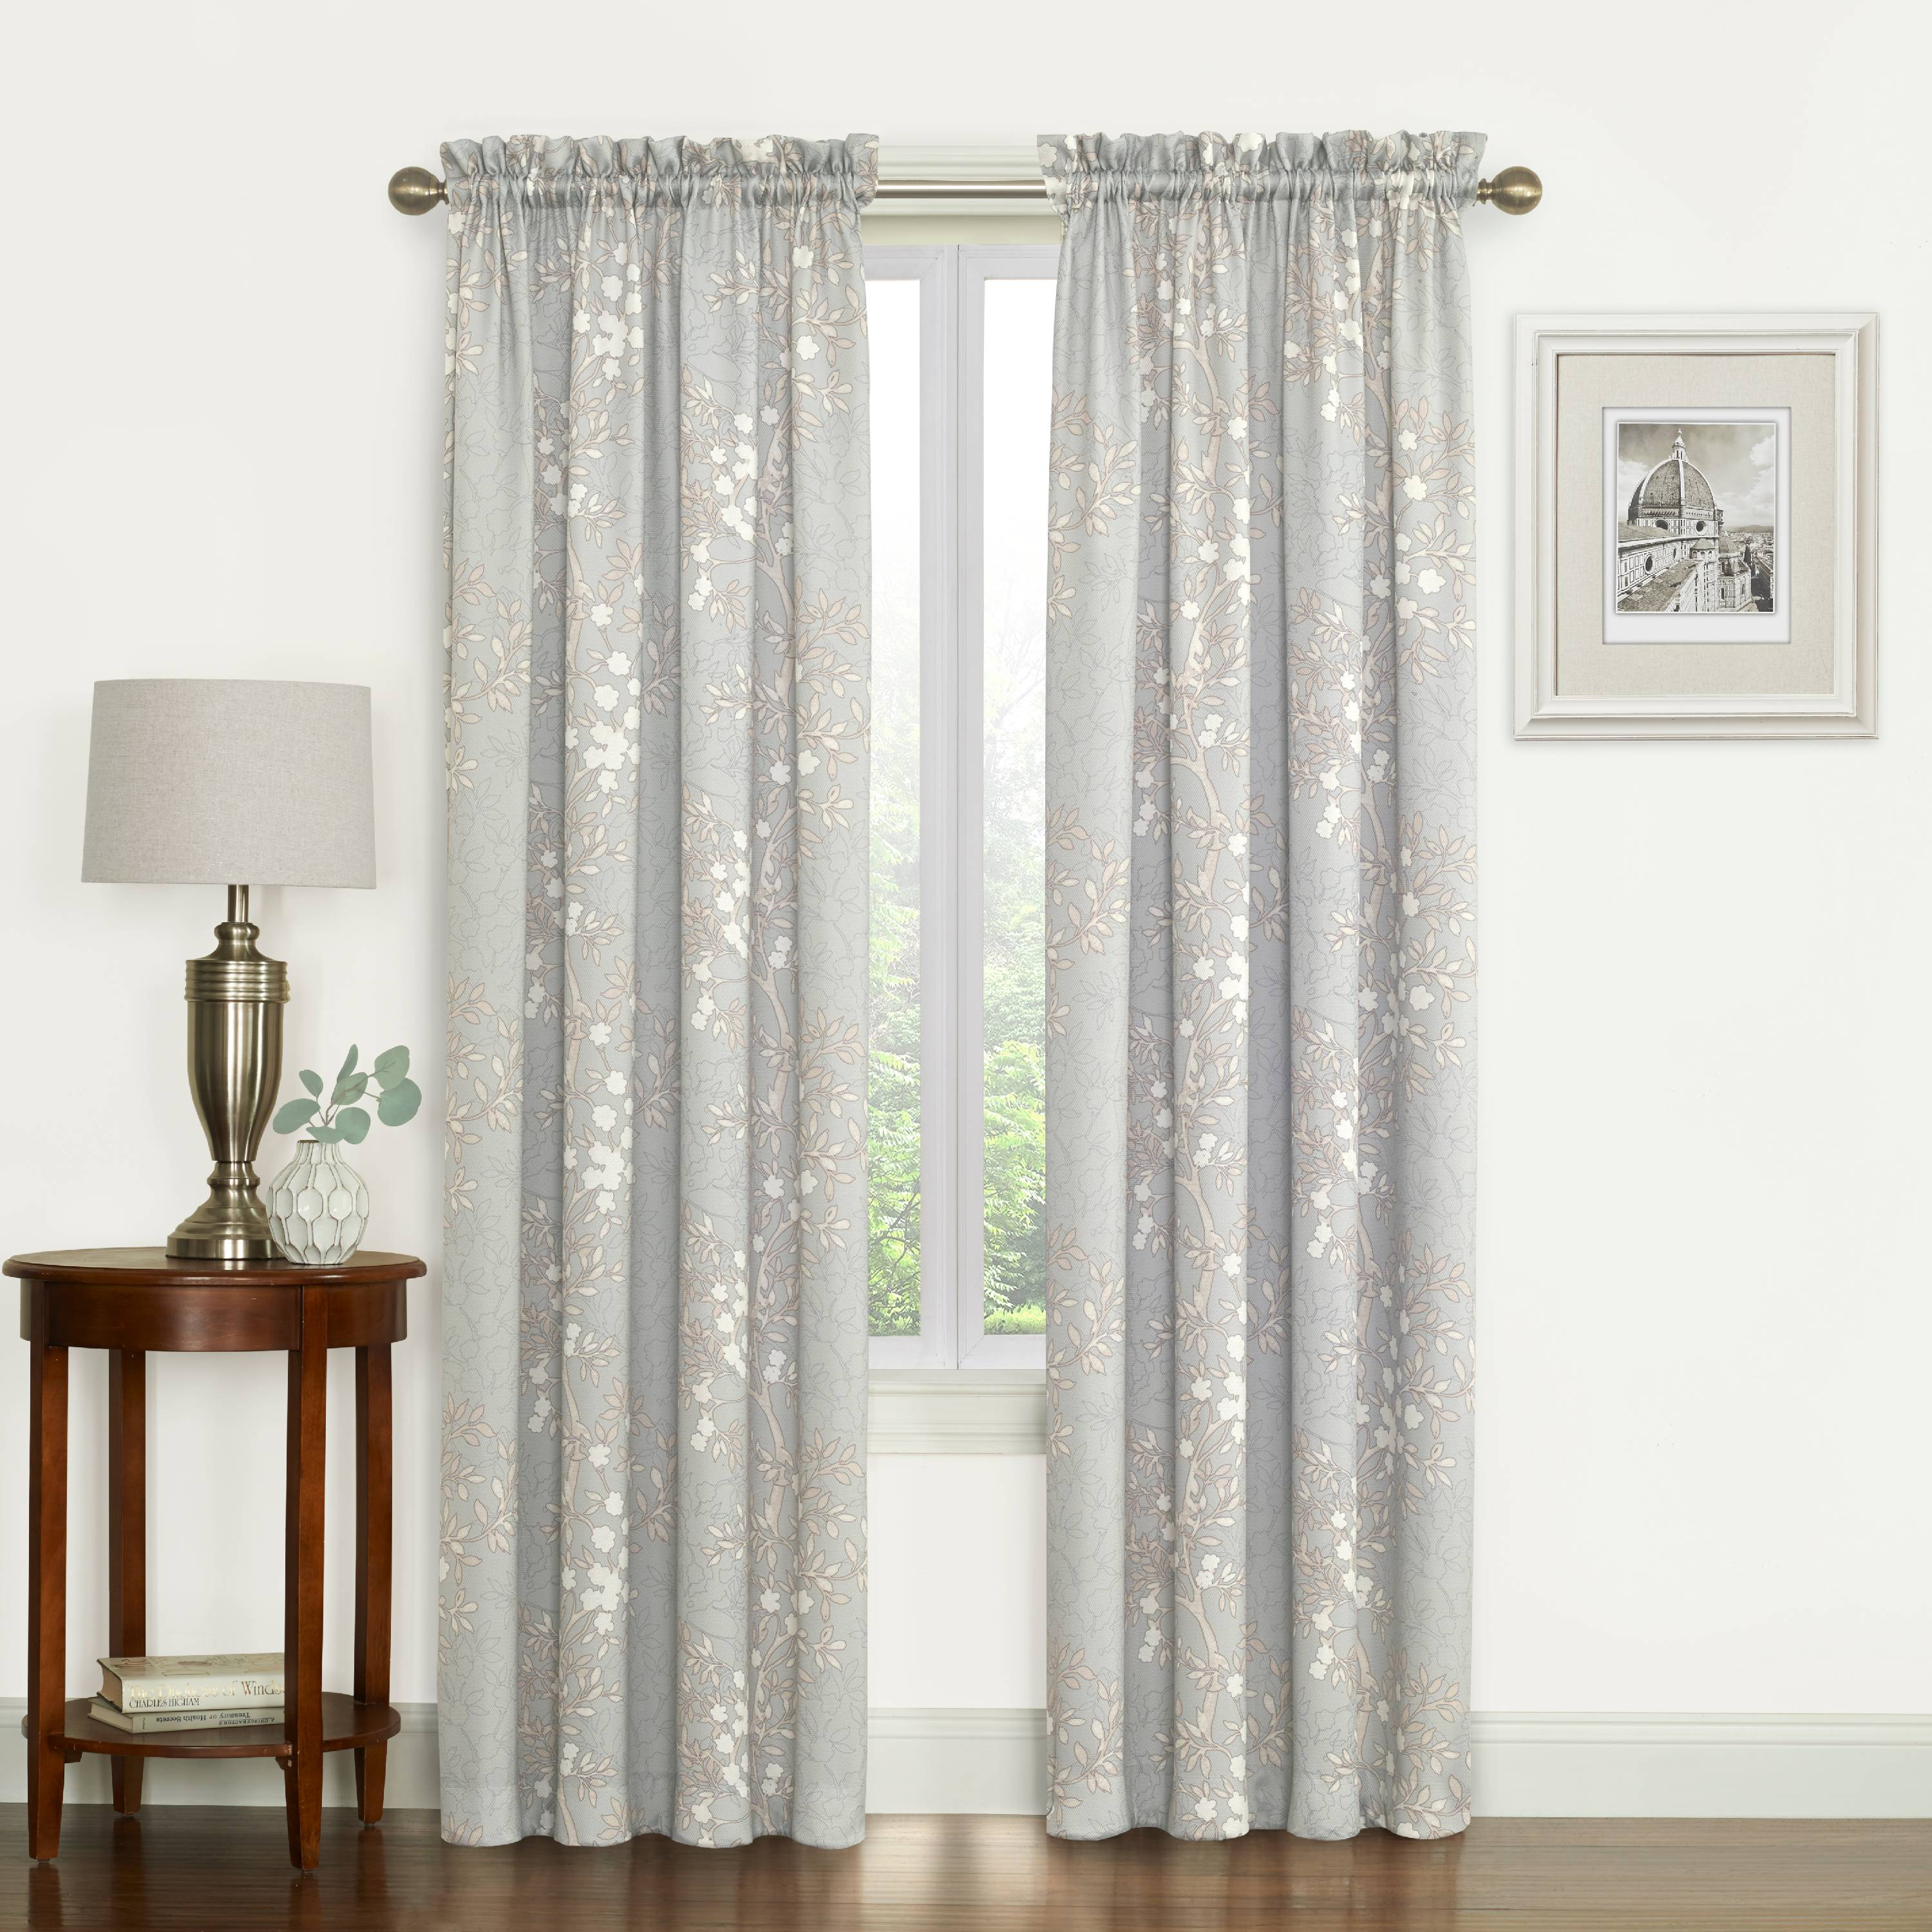 Mainstays Maisie Floral Print Window Curtain Panel, Set of 2